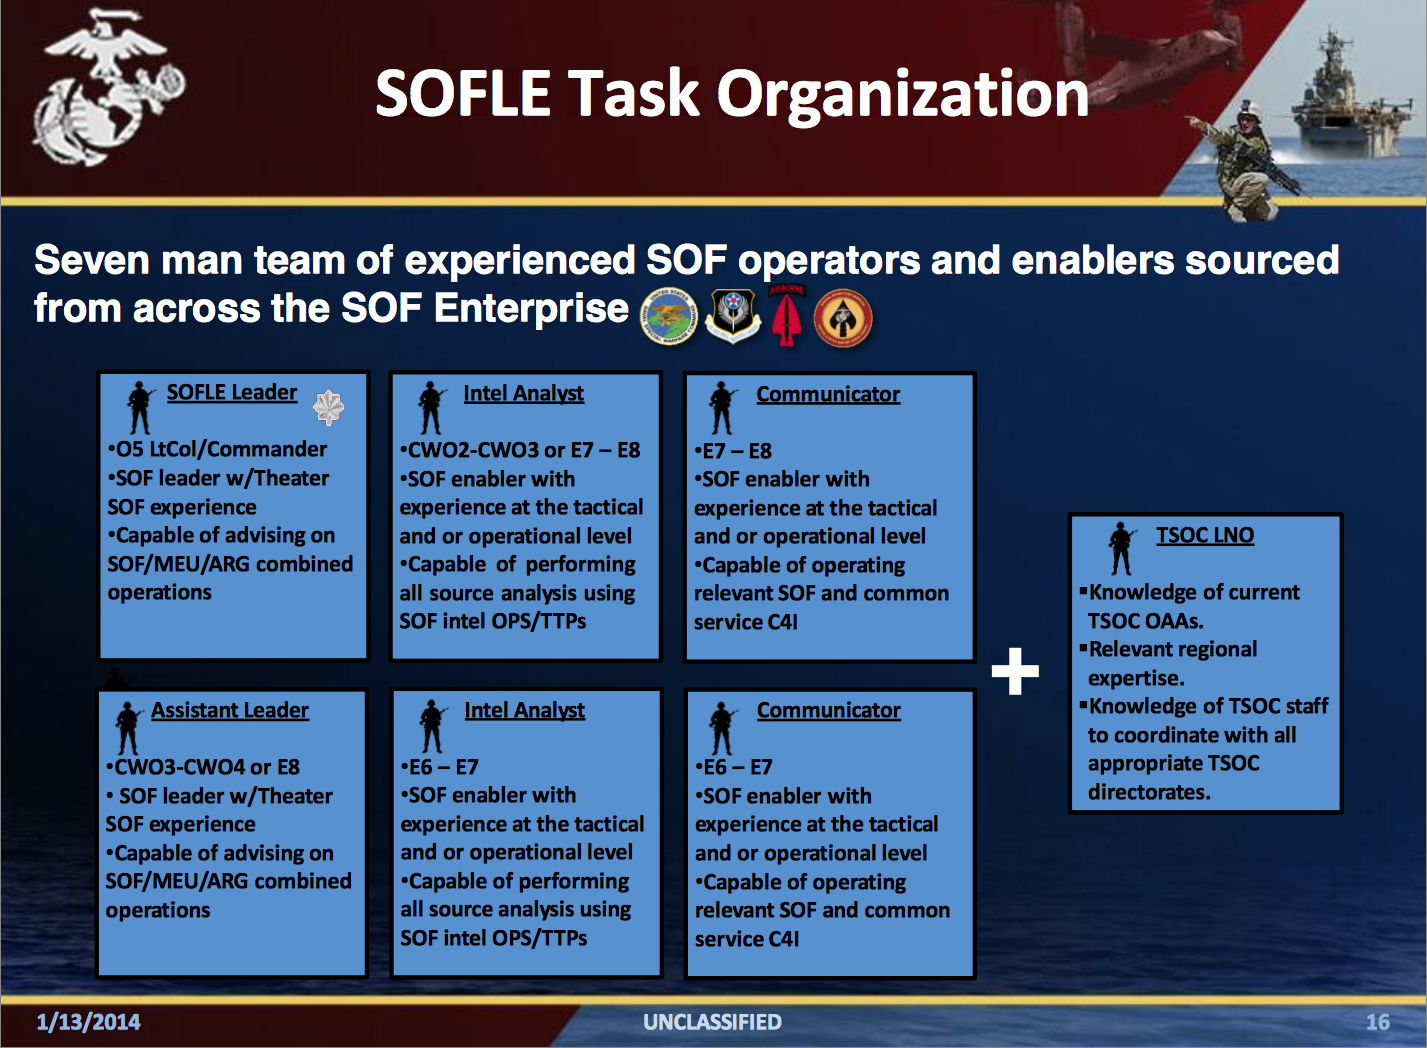 A 2014 outline of the SOFLE concept from the 2014 WEST Conference